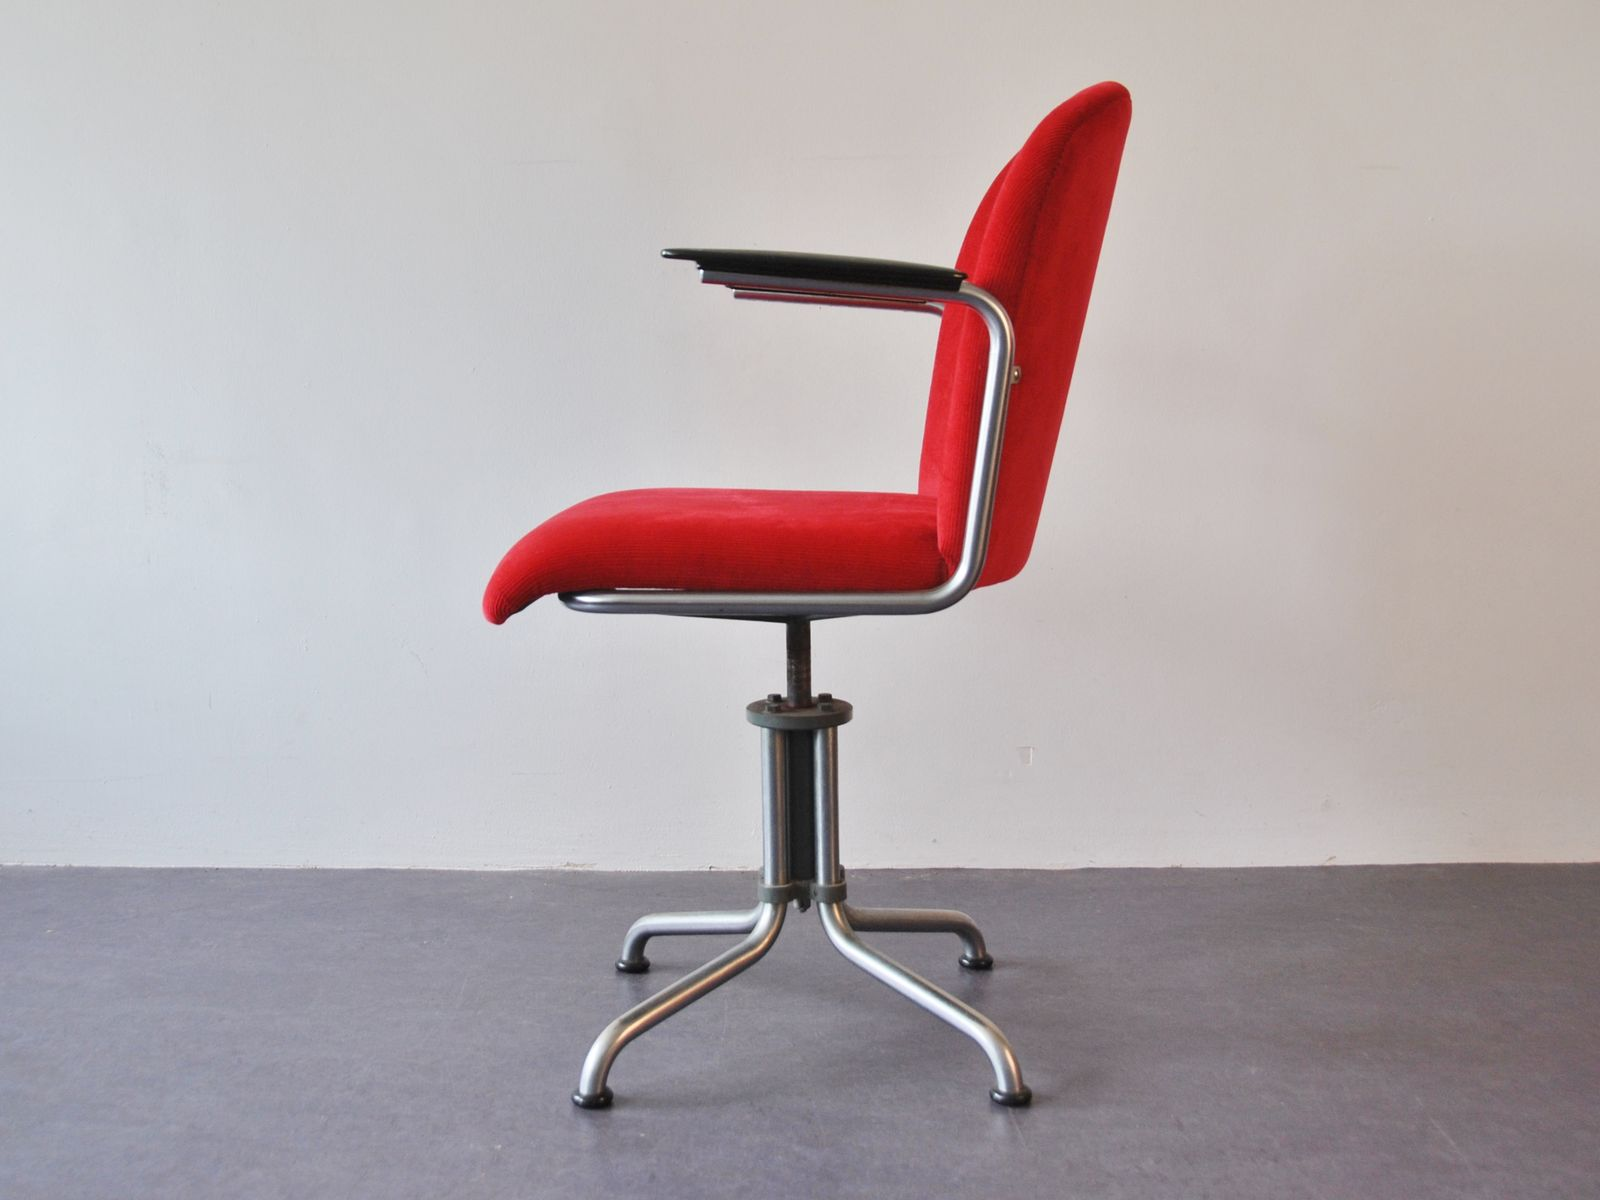 Vintage Desk Chair by W H Gispen for Gispen 1950s for sale at Pamono